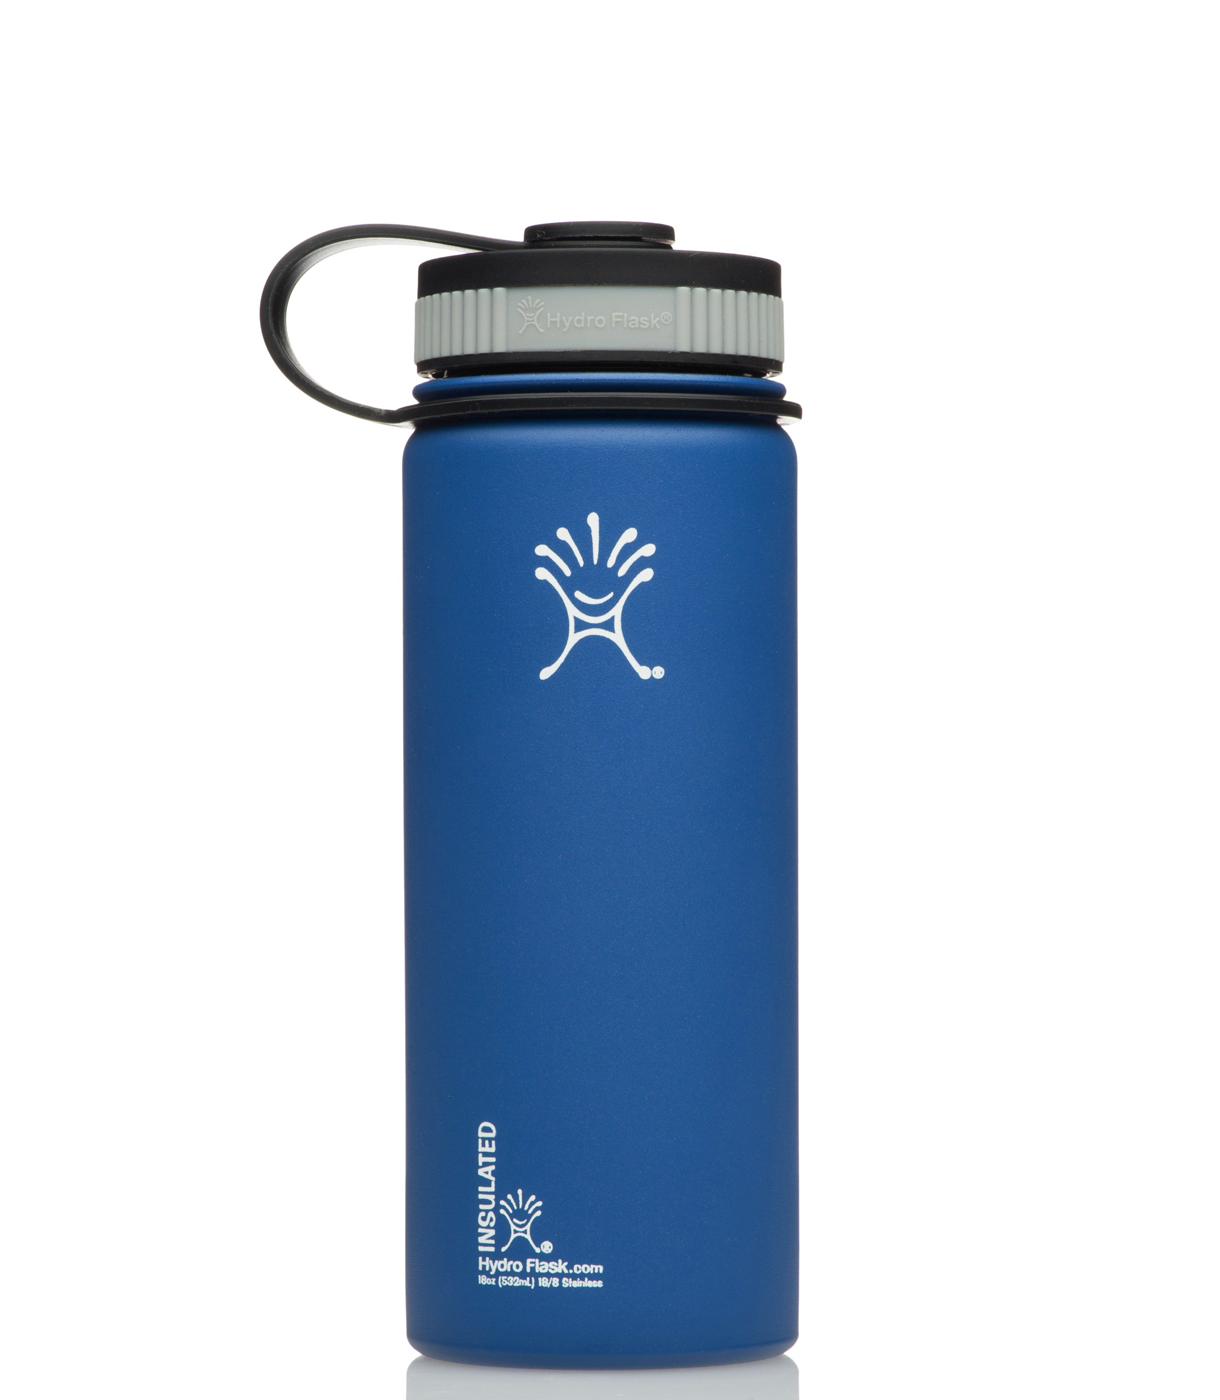 hydro-flask-wide-mouth-insulated-water-bottle 5